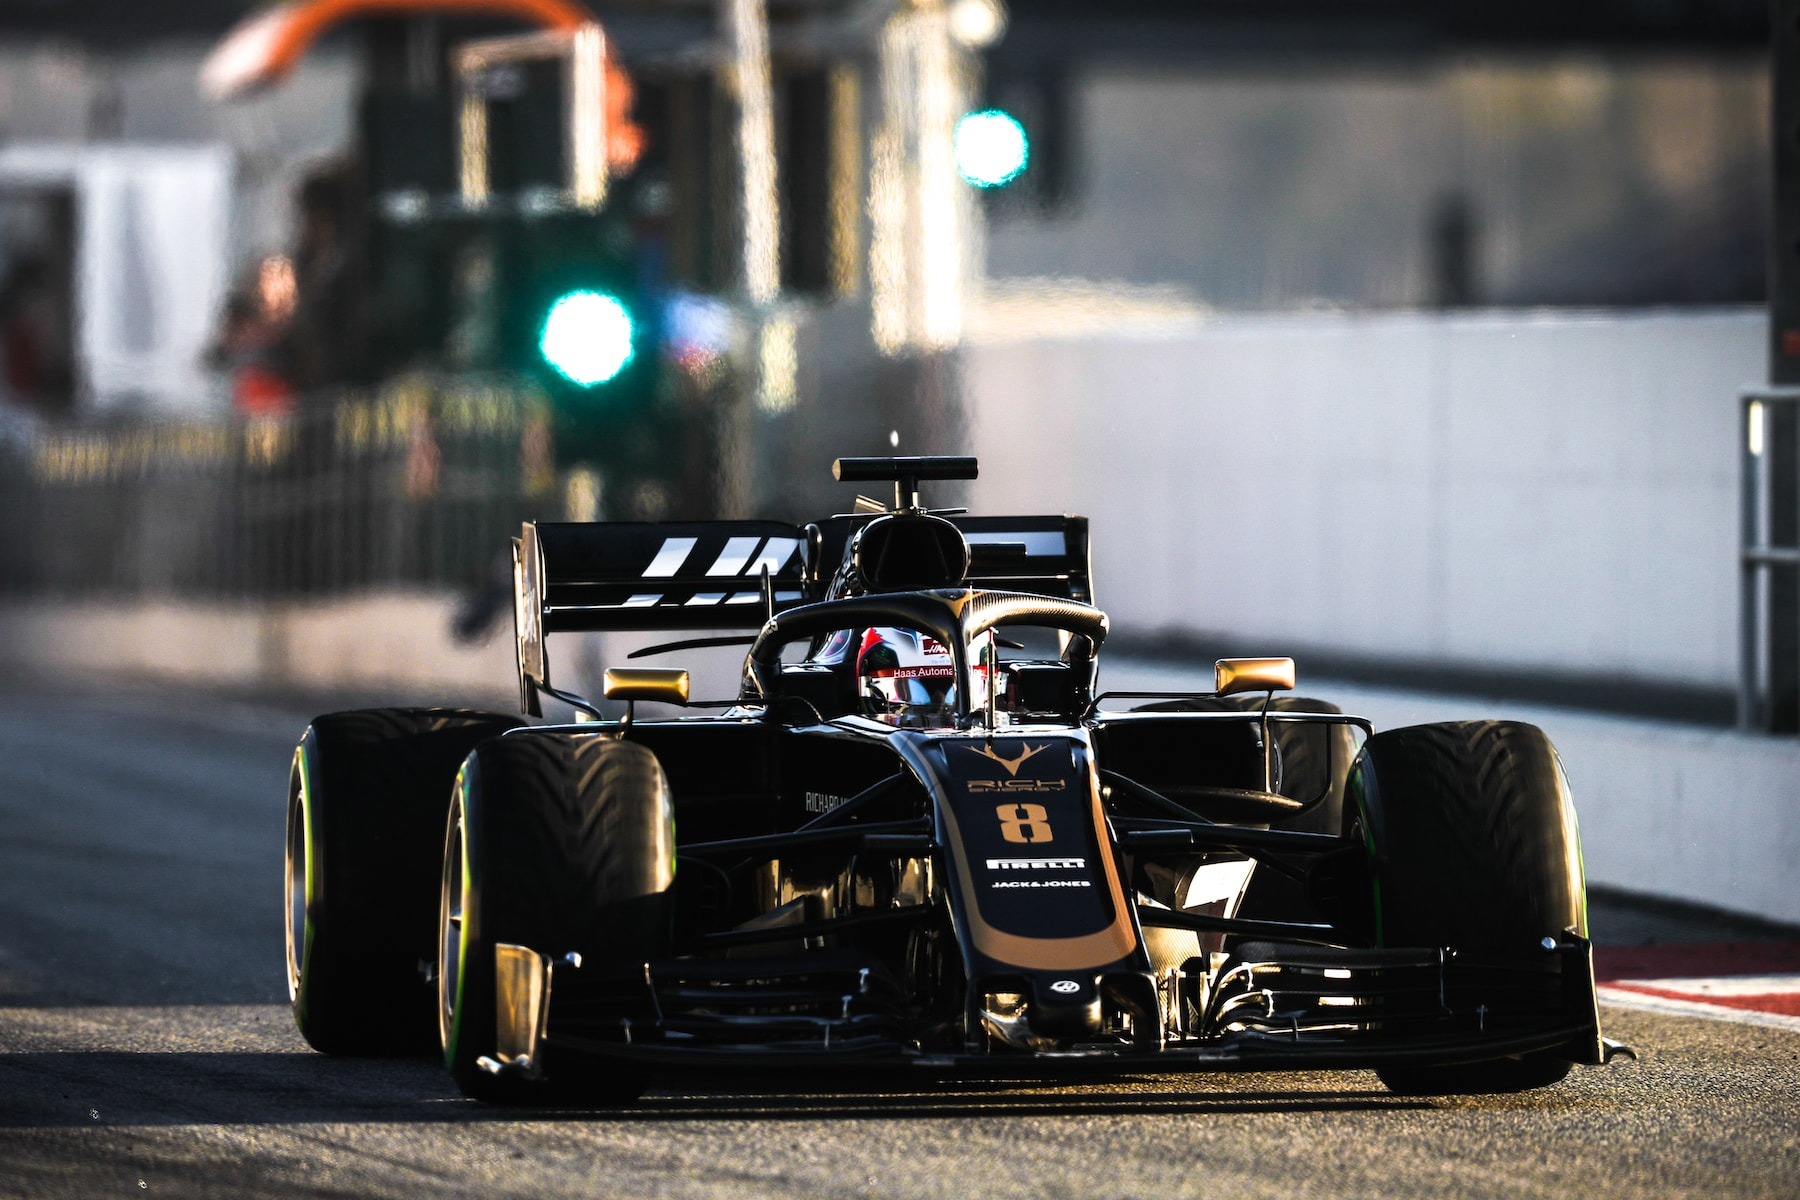 2019 Romain Grosjean | Haas VF19 | 2019 Barcelona T2 D4 1 copy.jpg